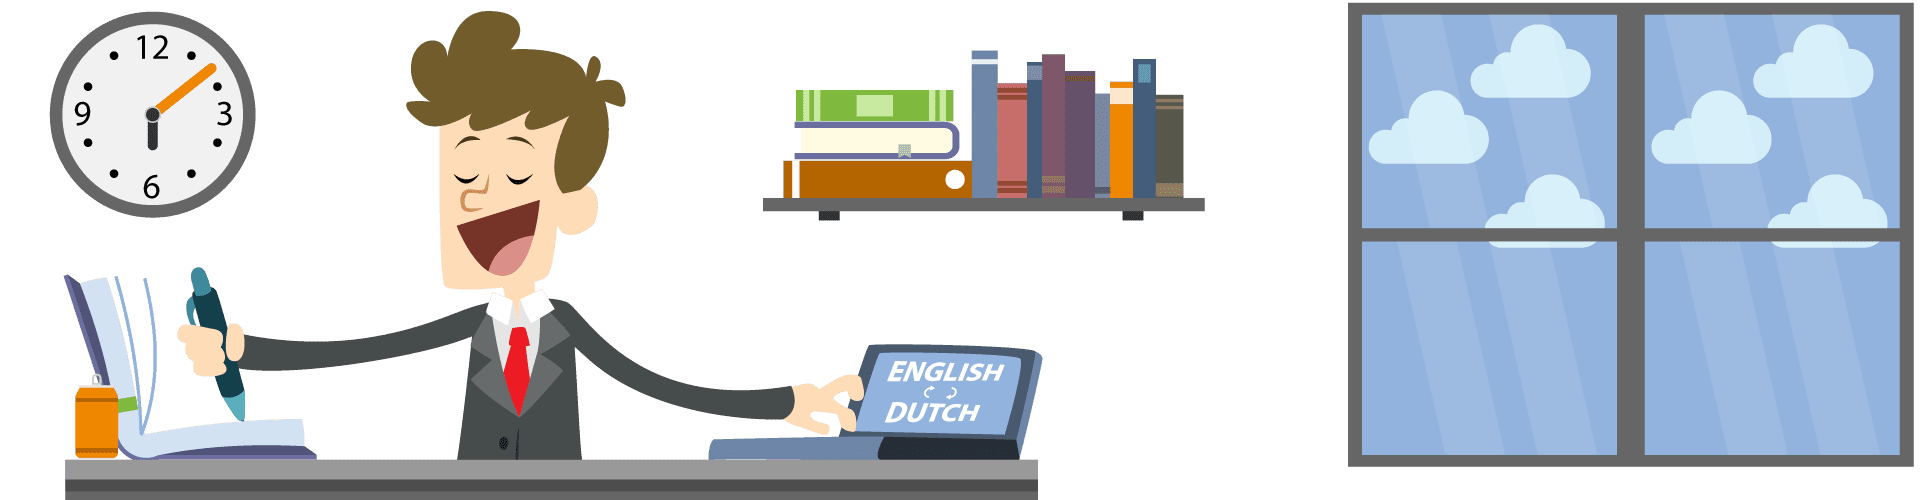 English to Dutch translation services